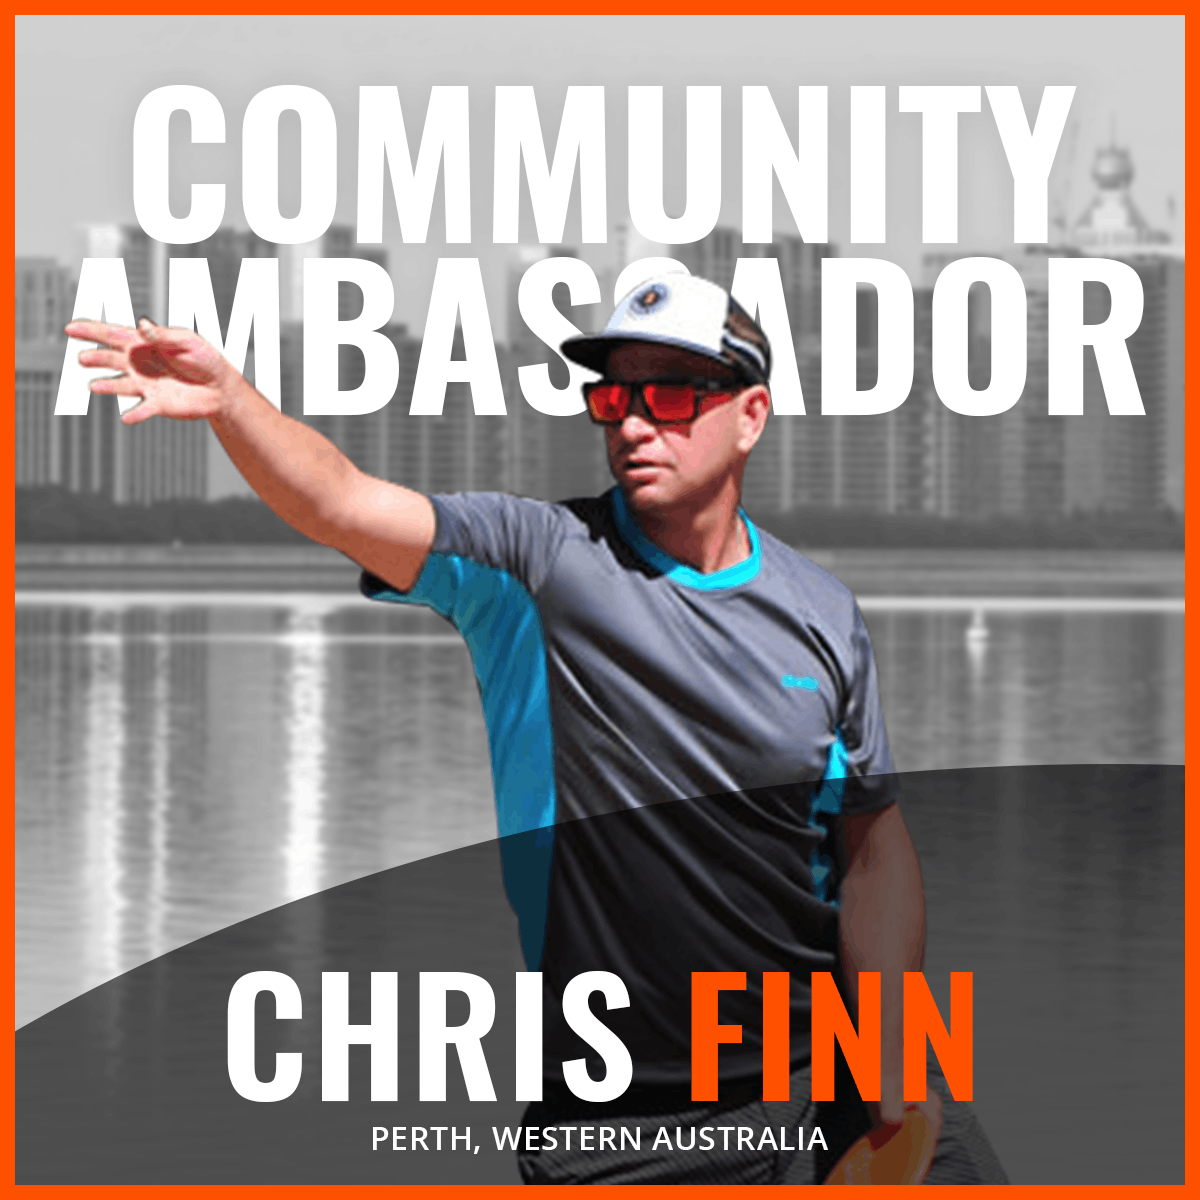 An Image of Chris Finn, Dude Clothing Community Ambassador